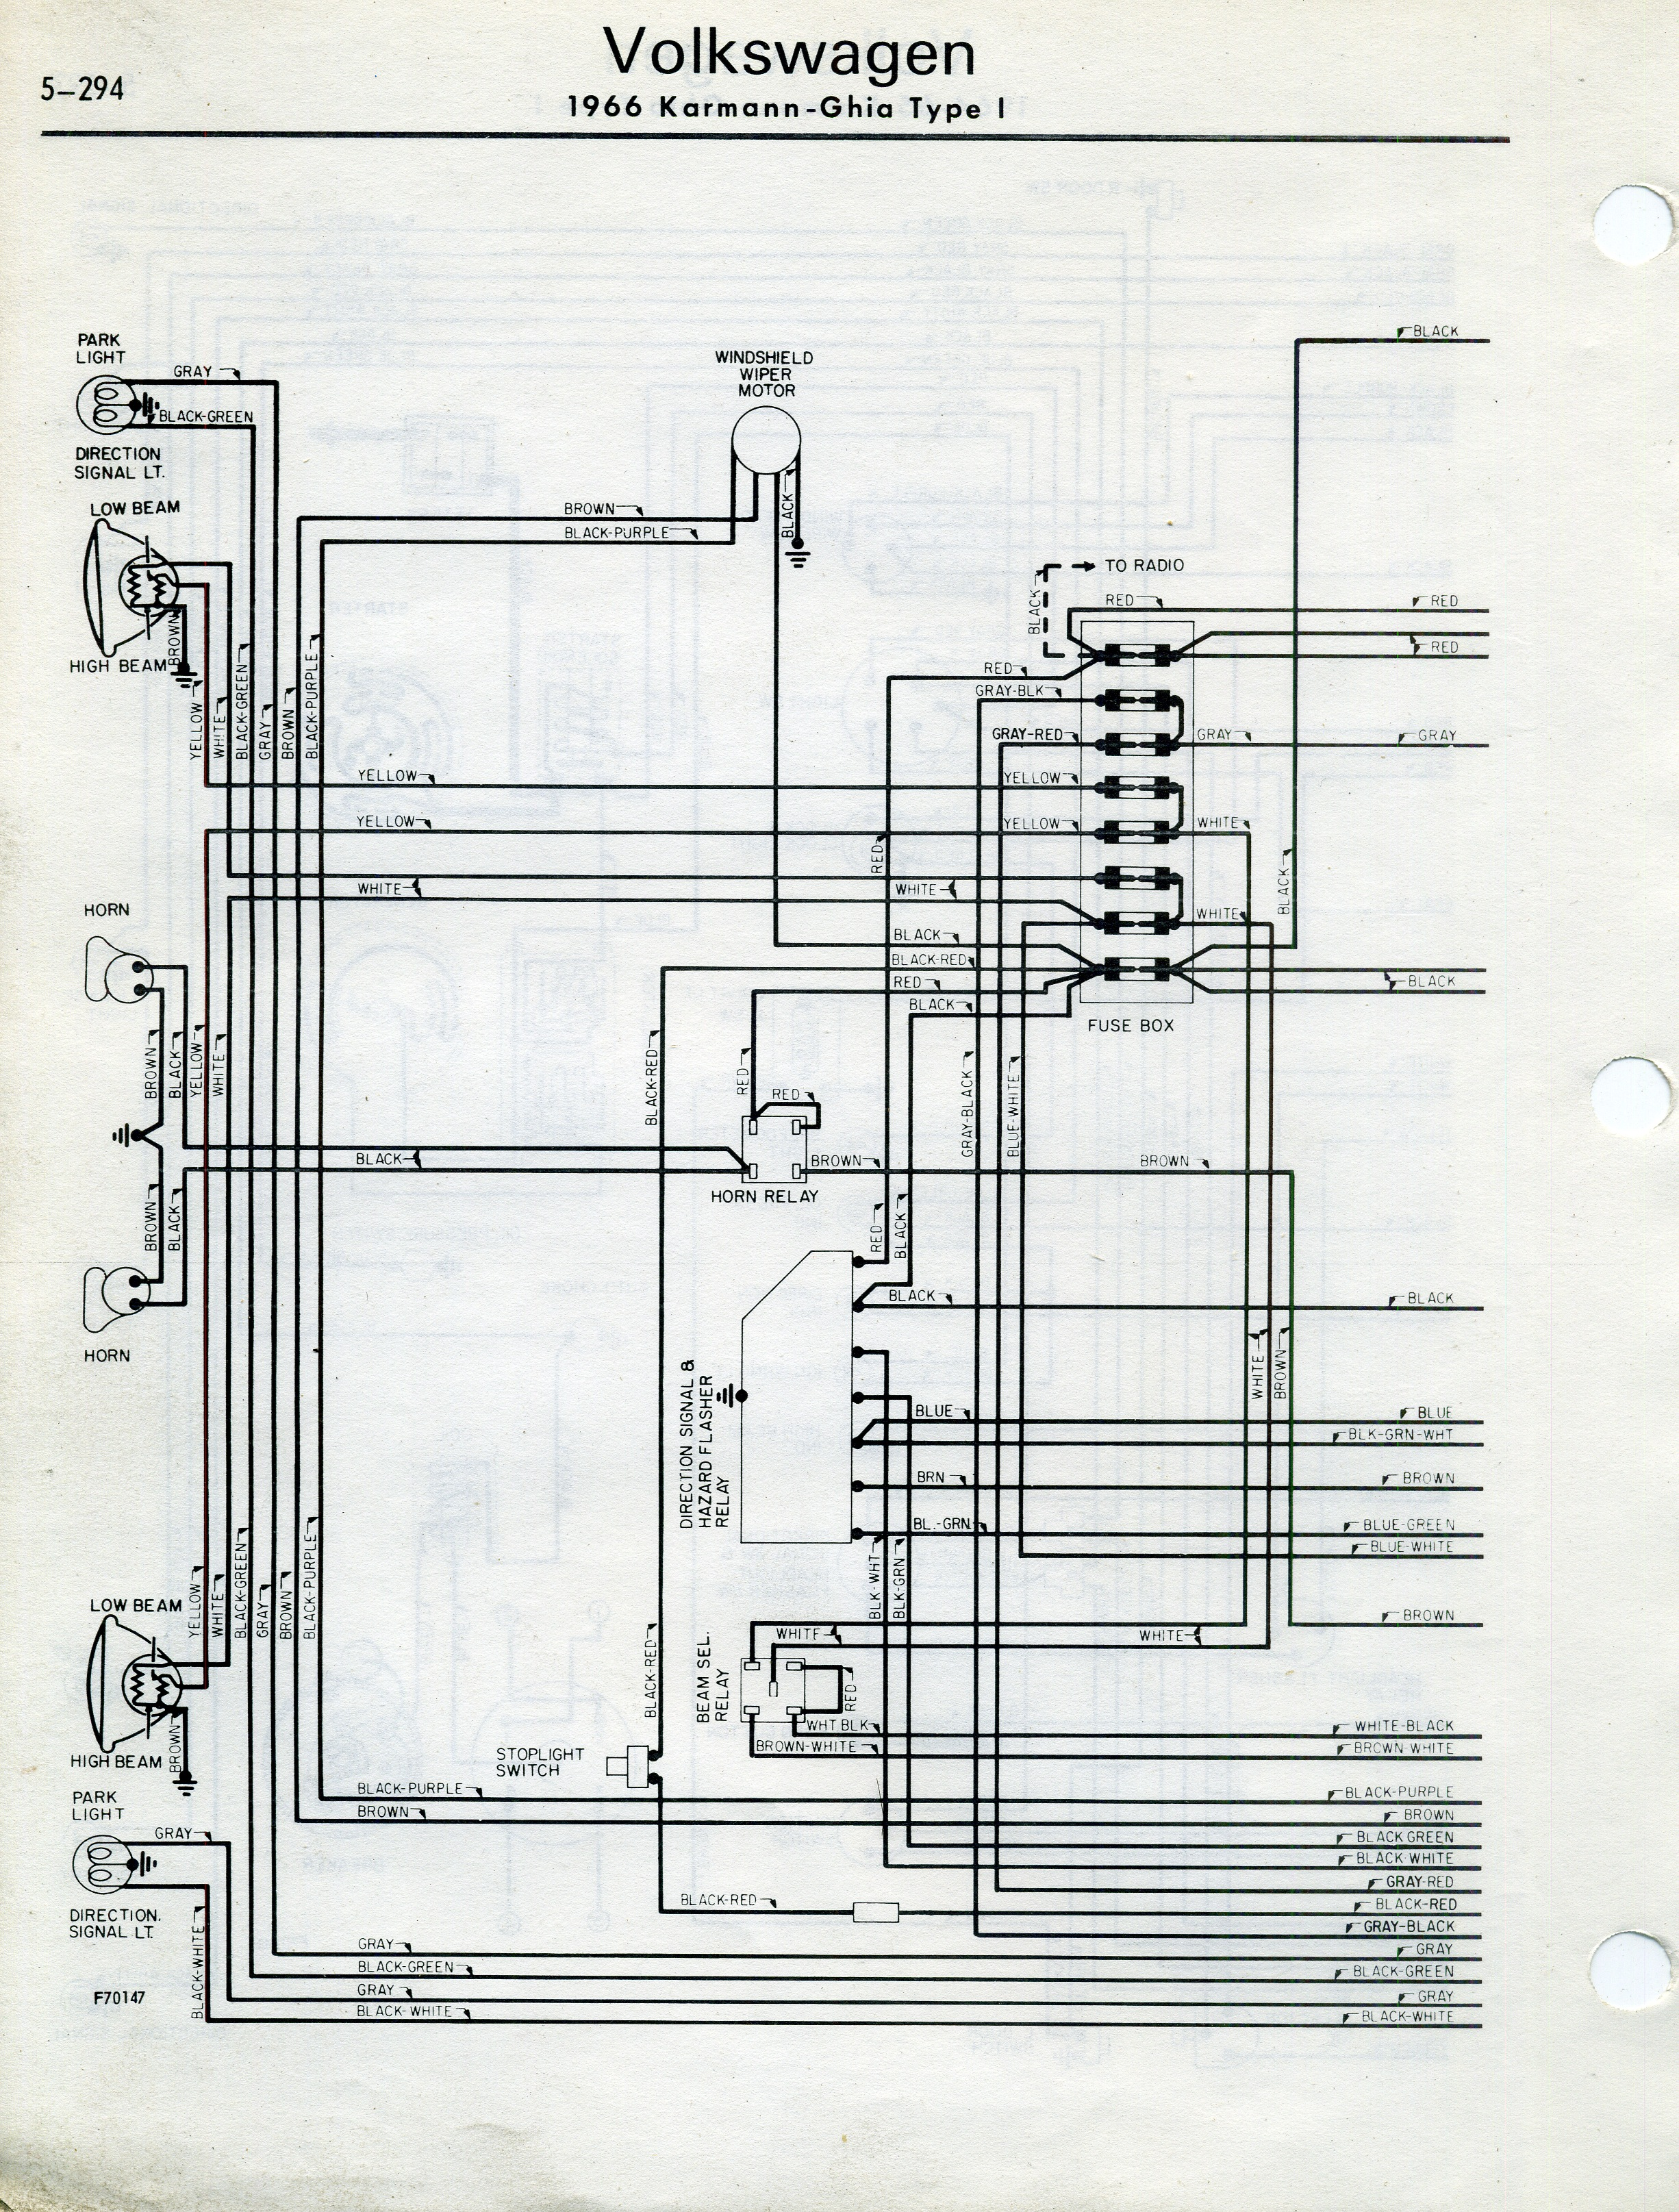 1970 wiring diagram karmann ghia